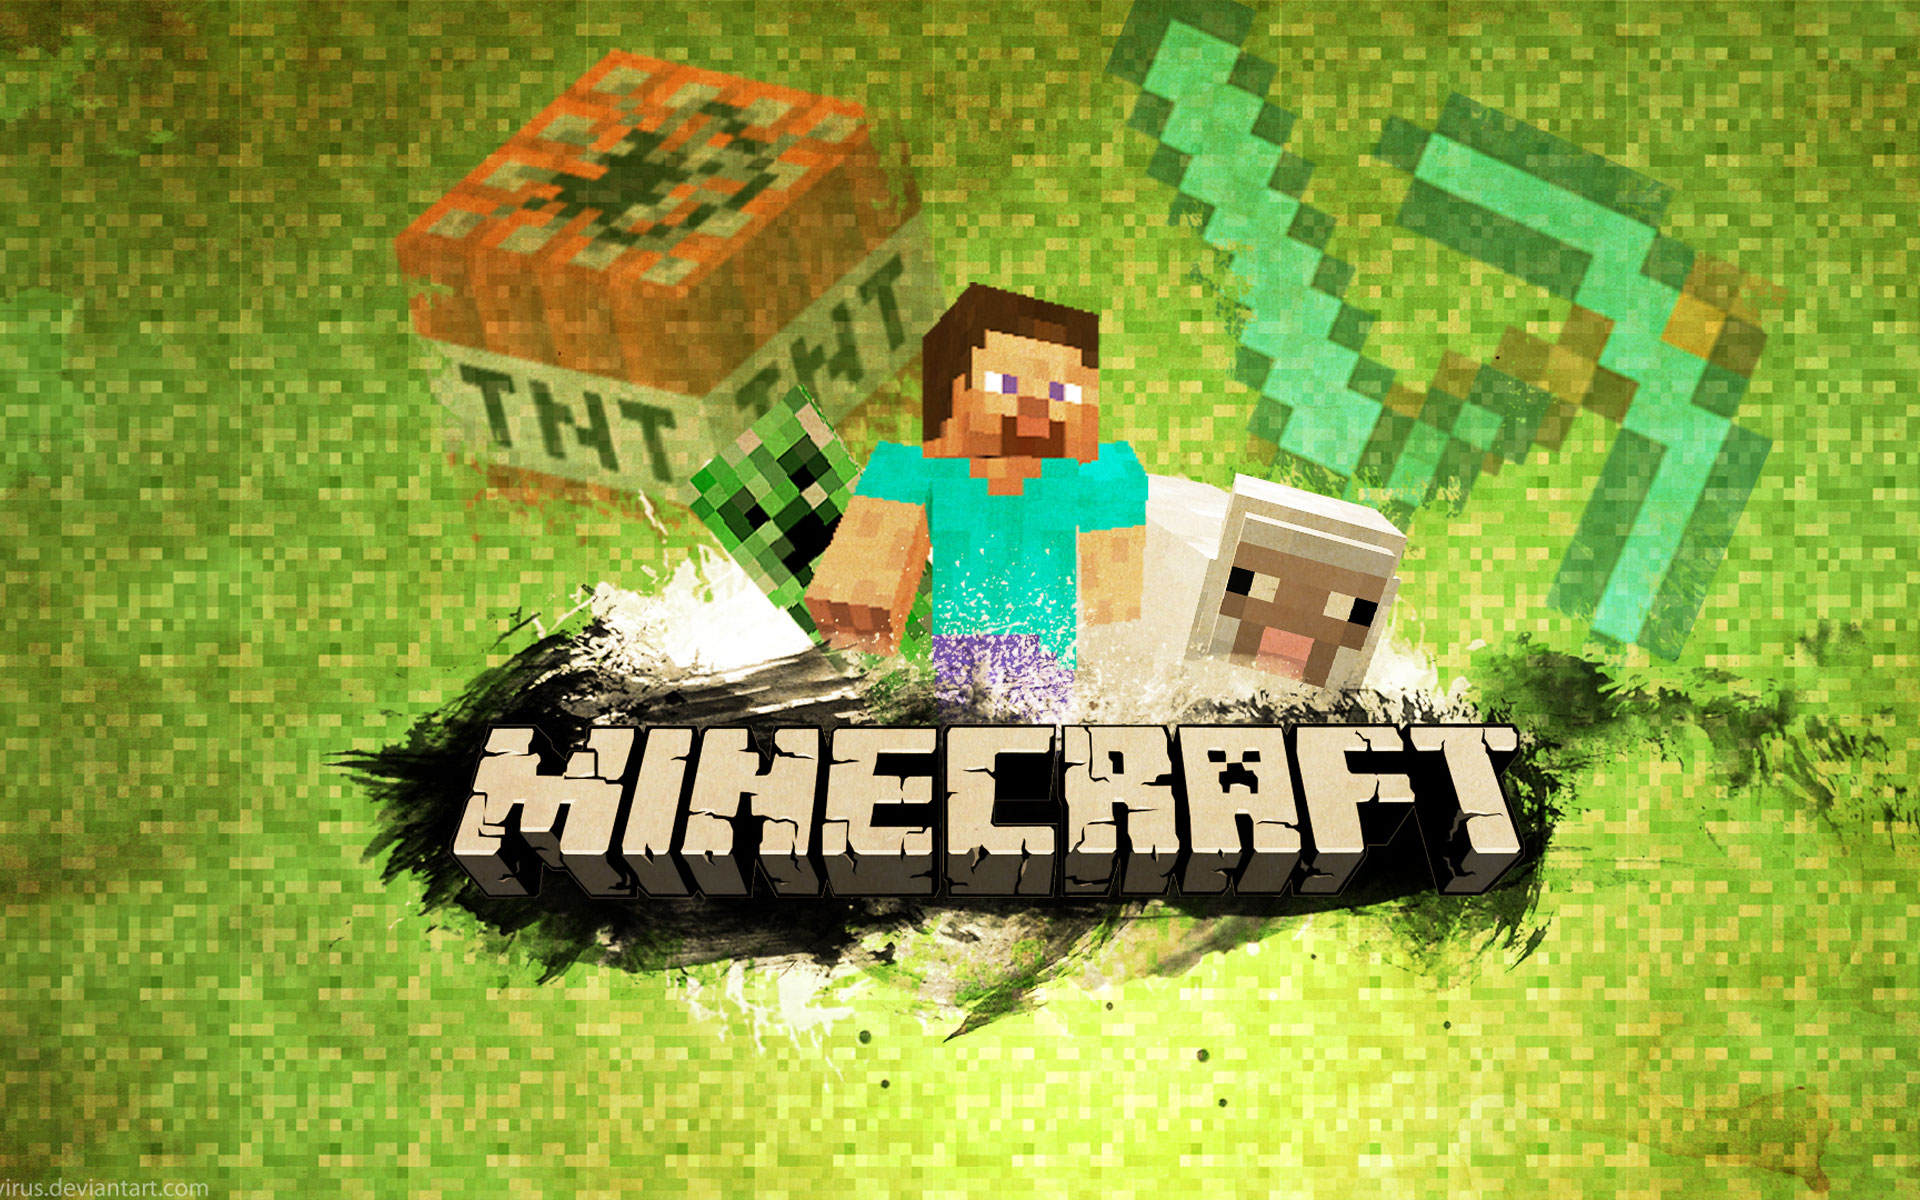 Minecraft fan Wallpaper Image